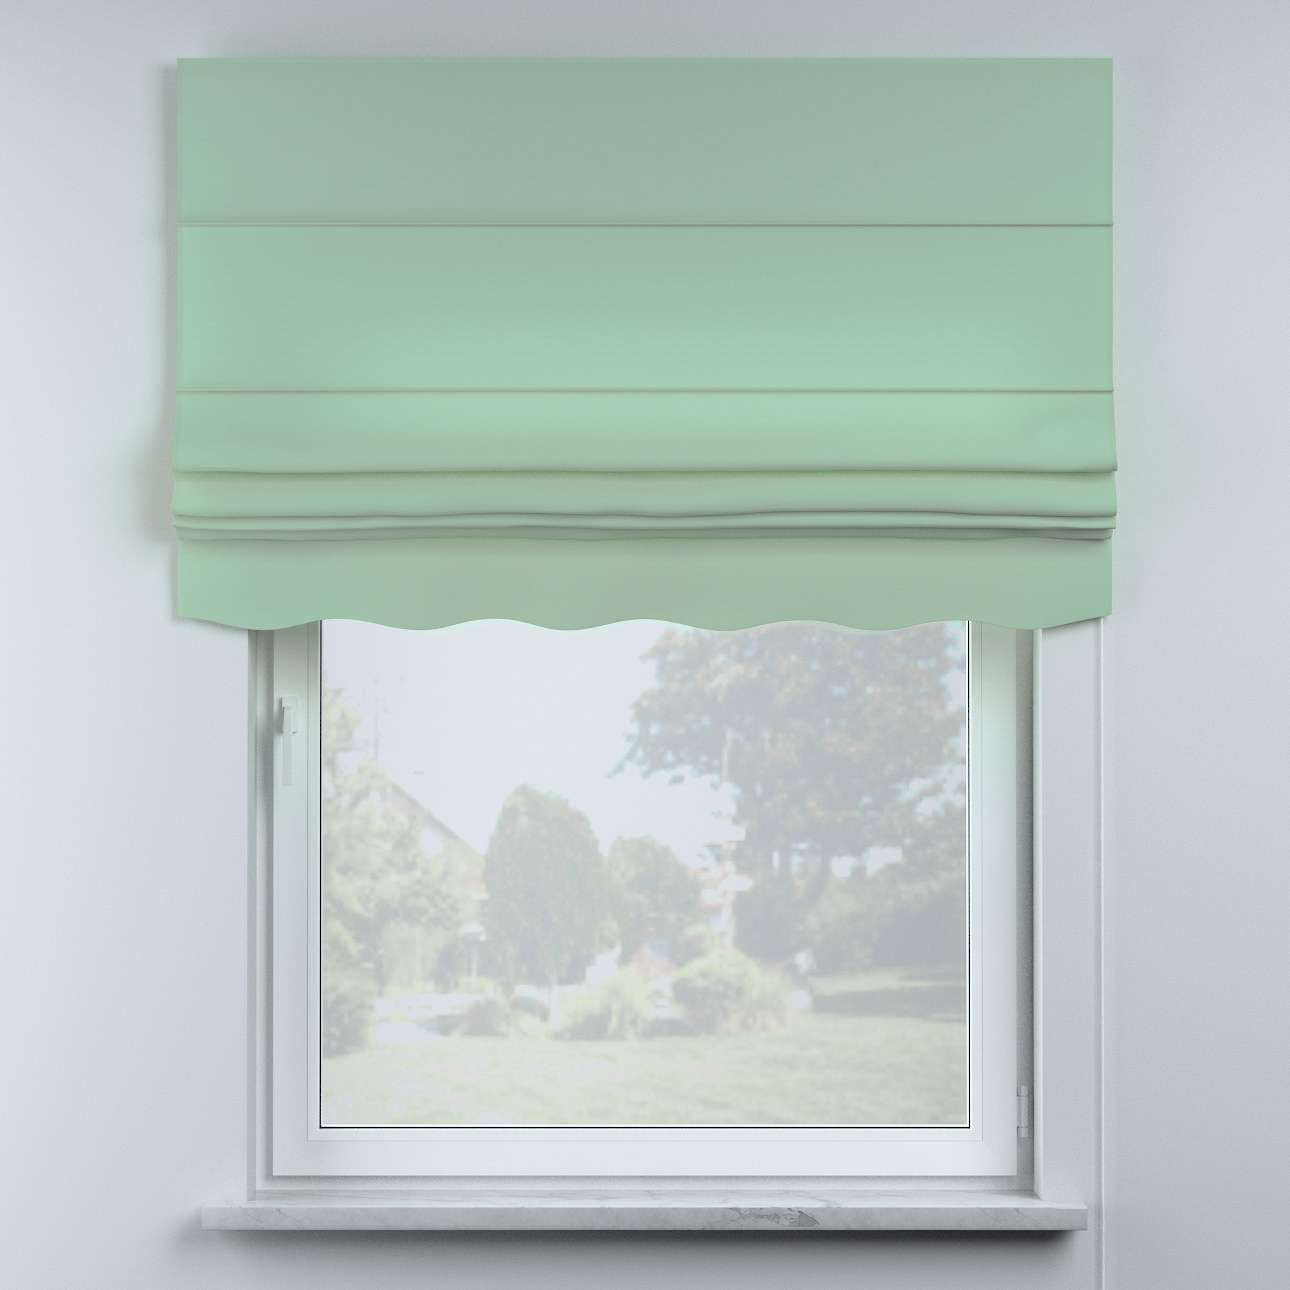 Mela roman blind in collection Happiness, fabric: 133-61